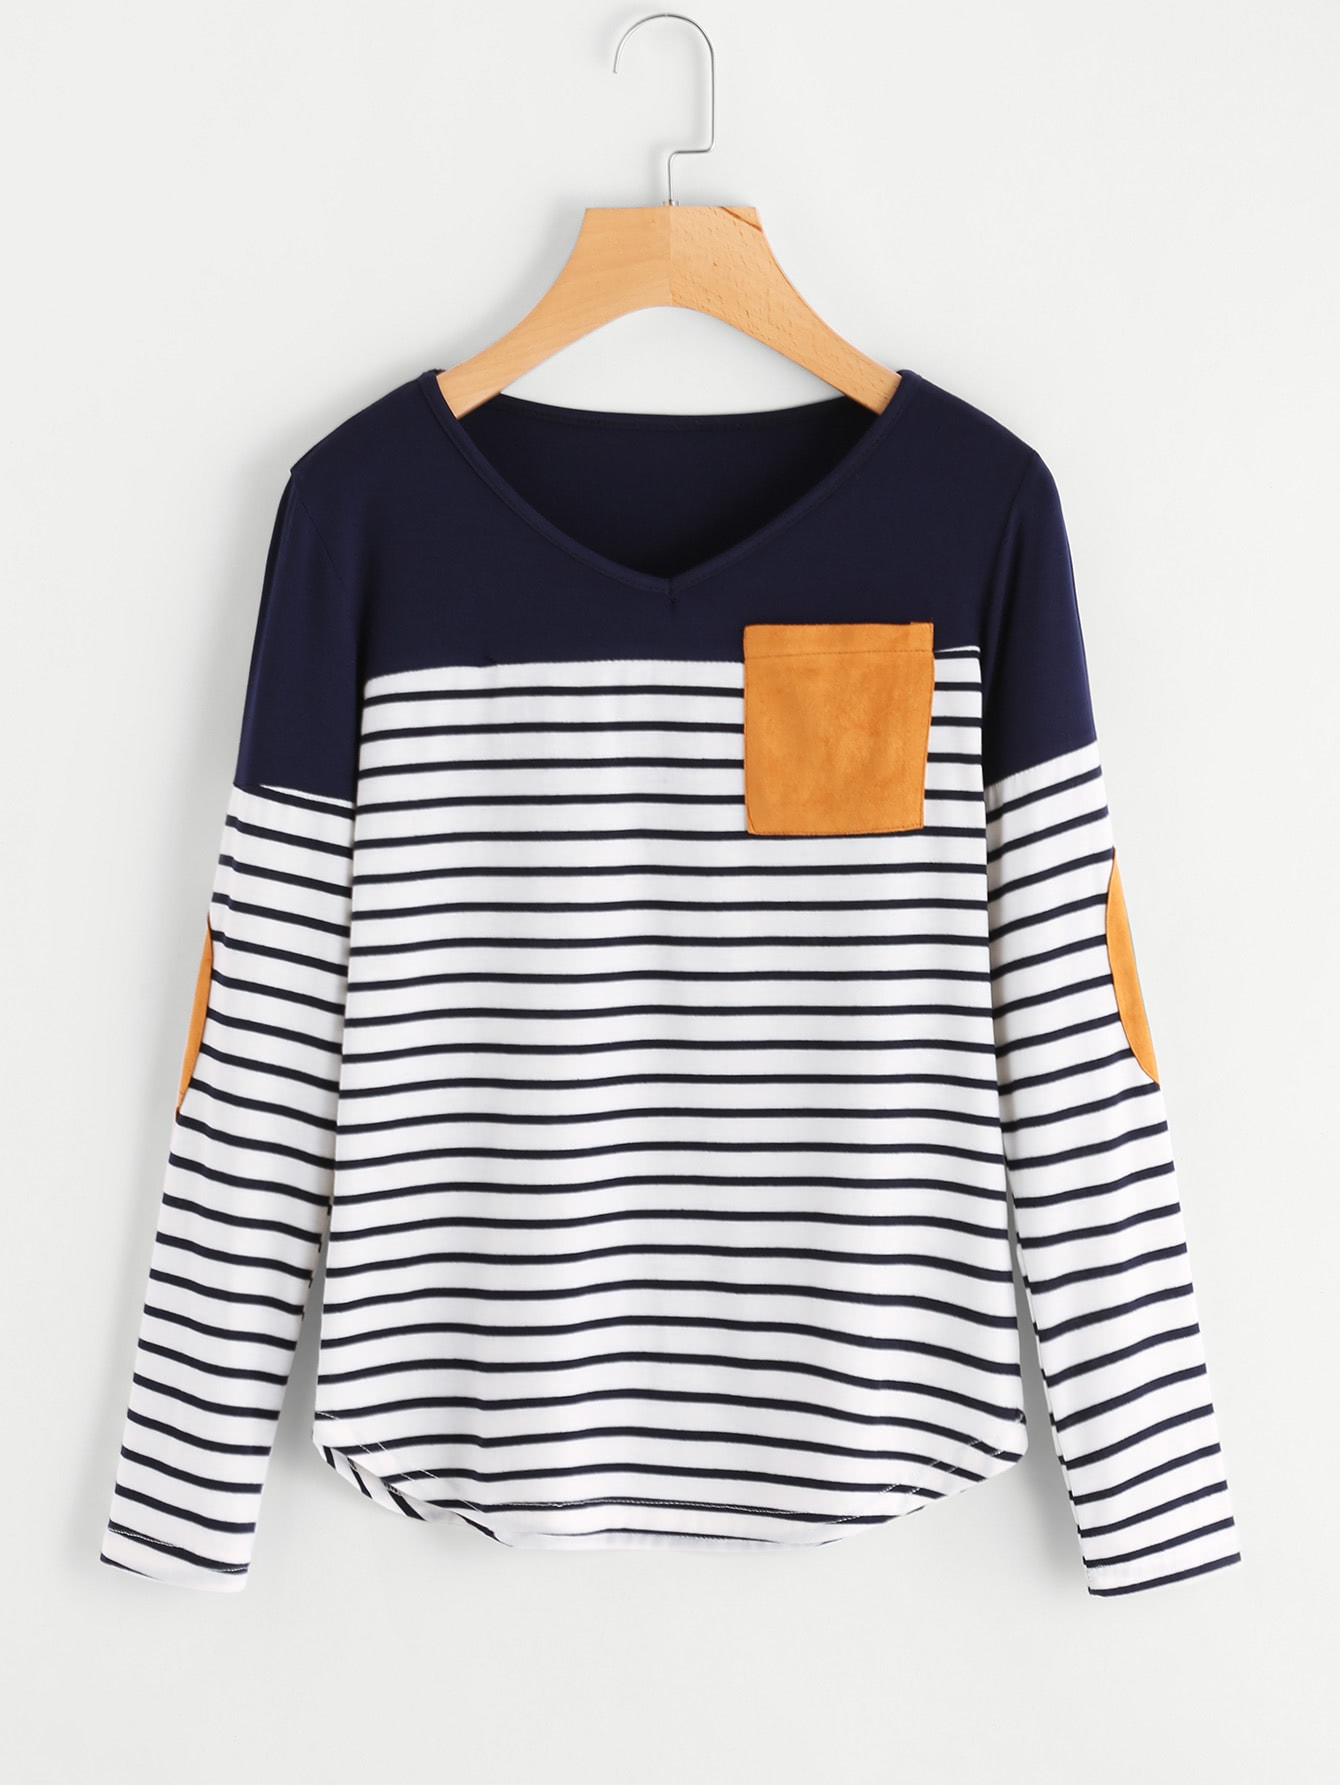 Striped Elbow Patch Curved Hem T-shirt striped elbow patch curved hem t shirt